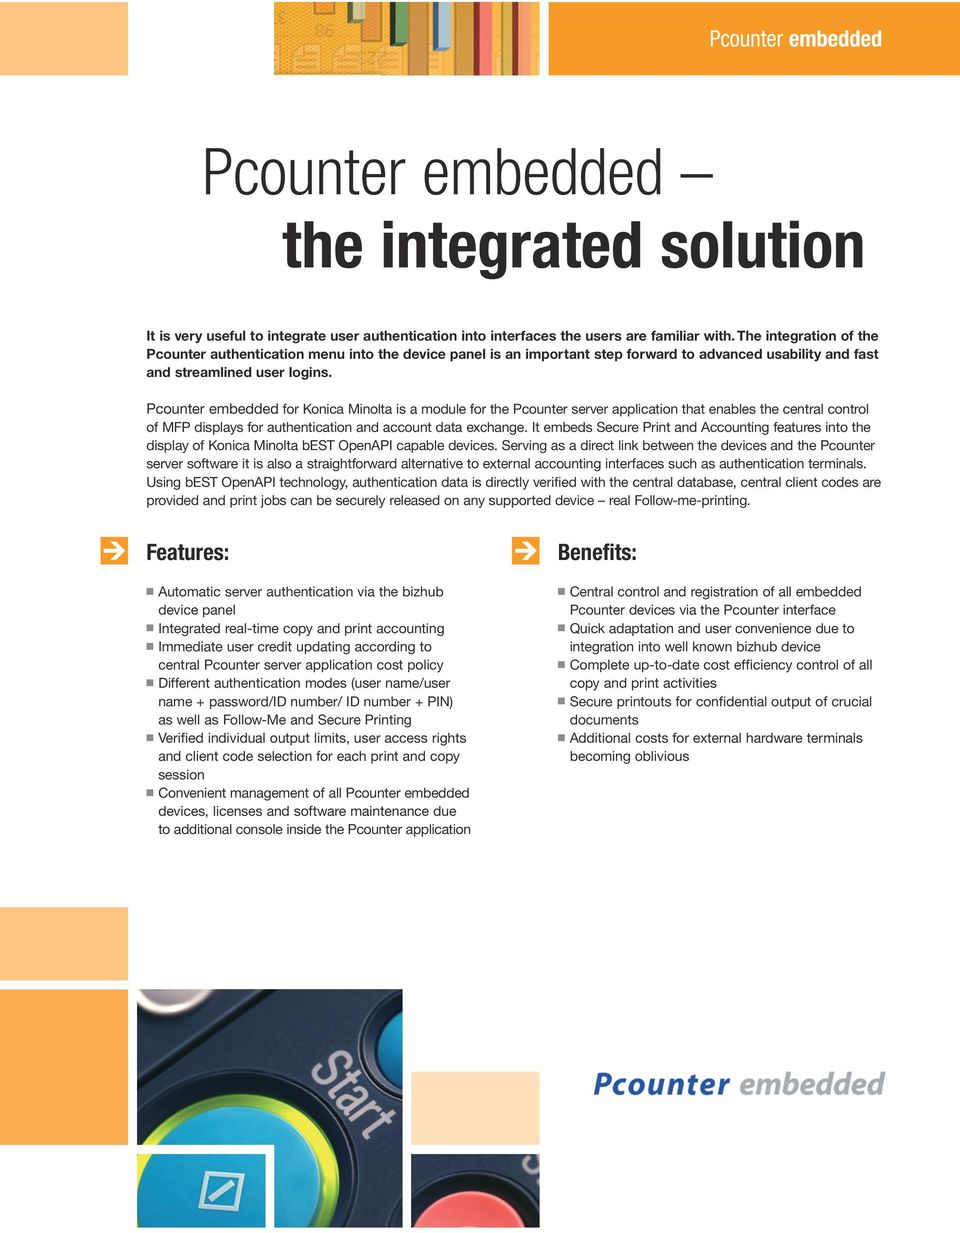 Pcounter embedded for Konica Minolta is a module for the Pcounter server application that enables the central control of MFP displays for authentication and account data exchange.